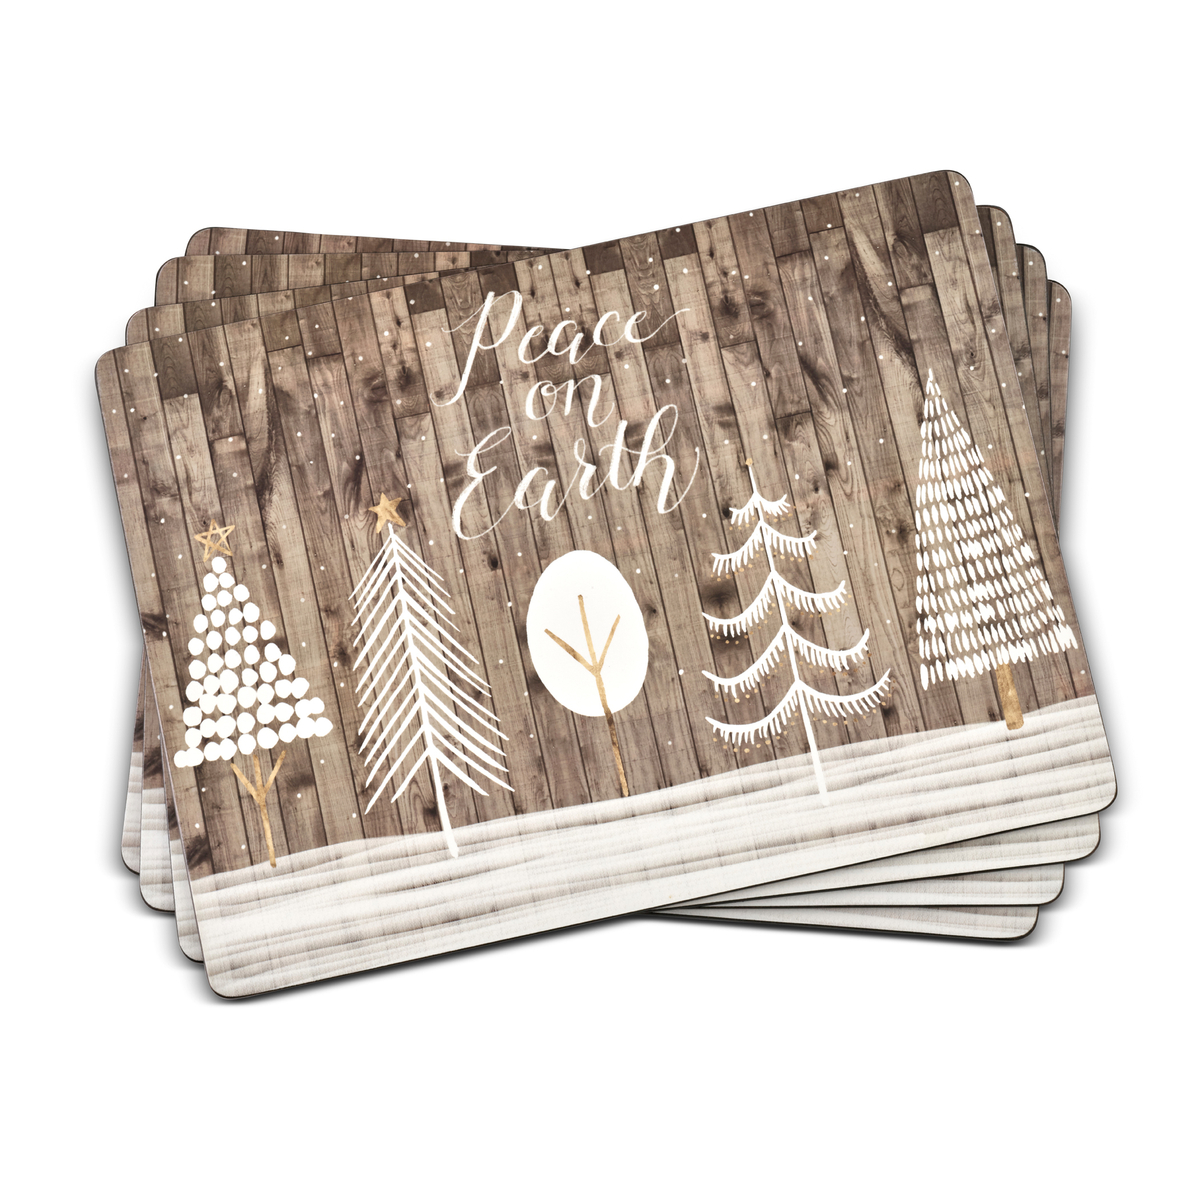 Pimpernel Wooden White Christmas Placemats Set of 4 image number 0